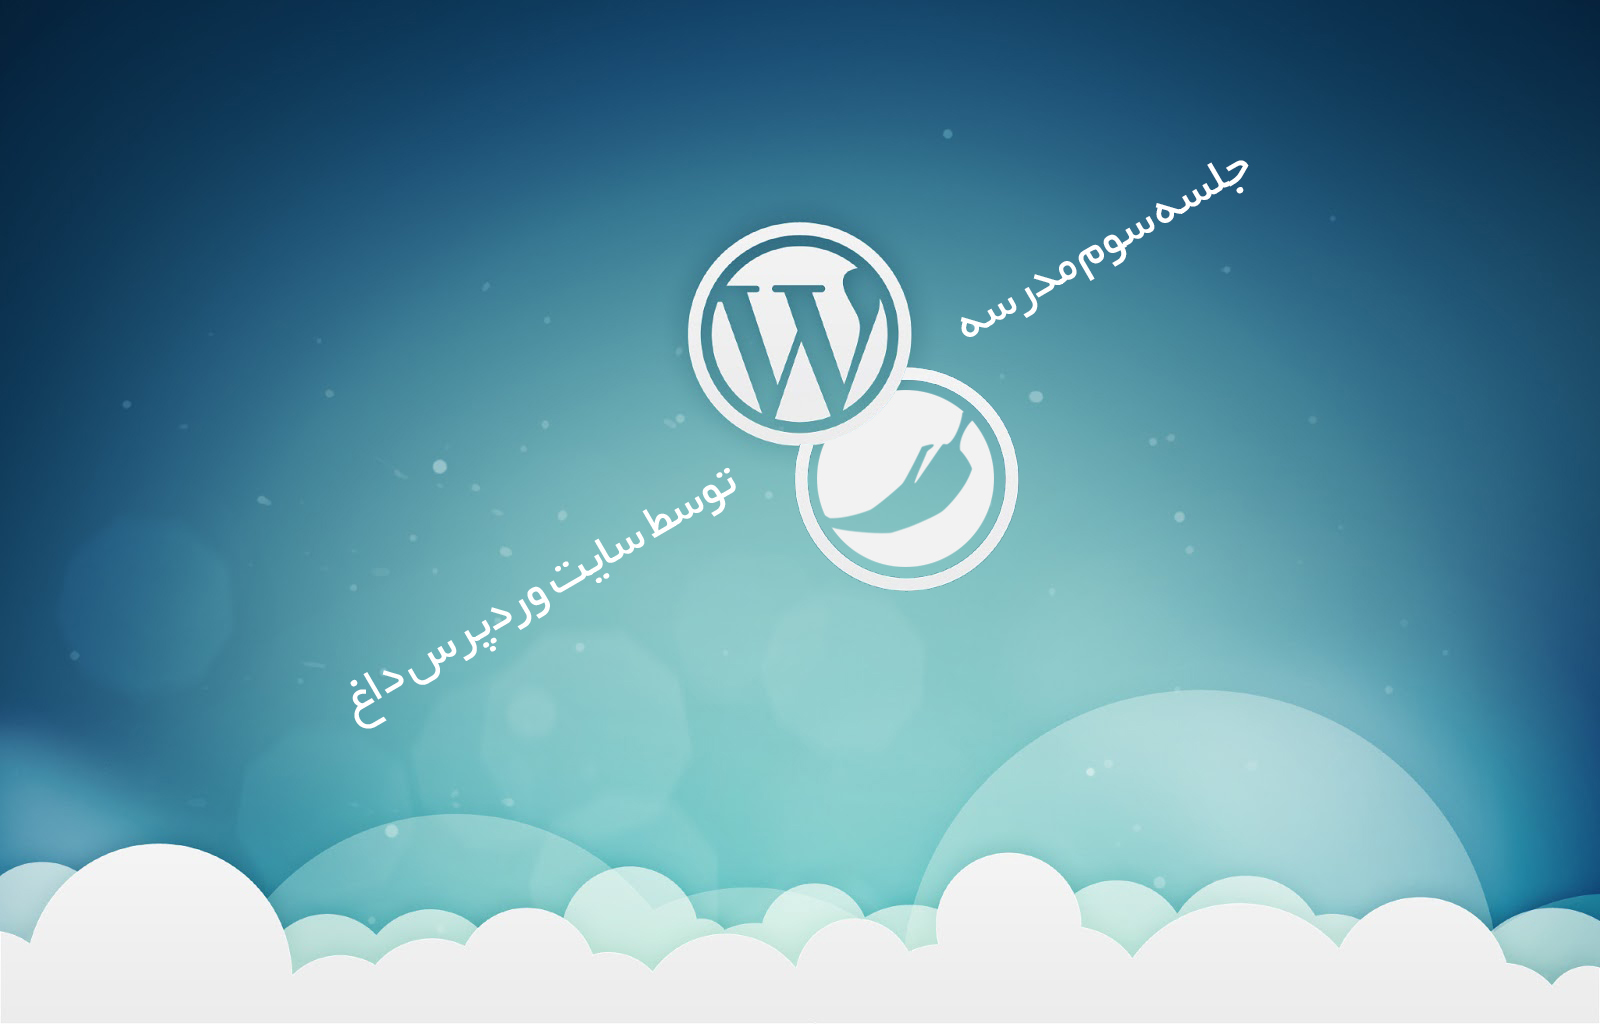 school-wordpress-redwp-3